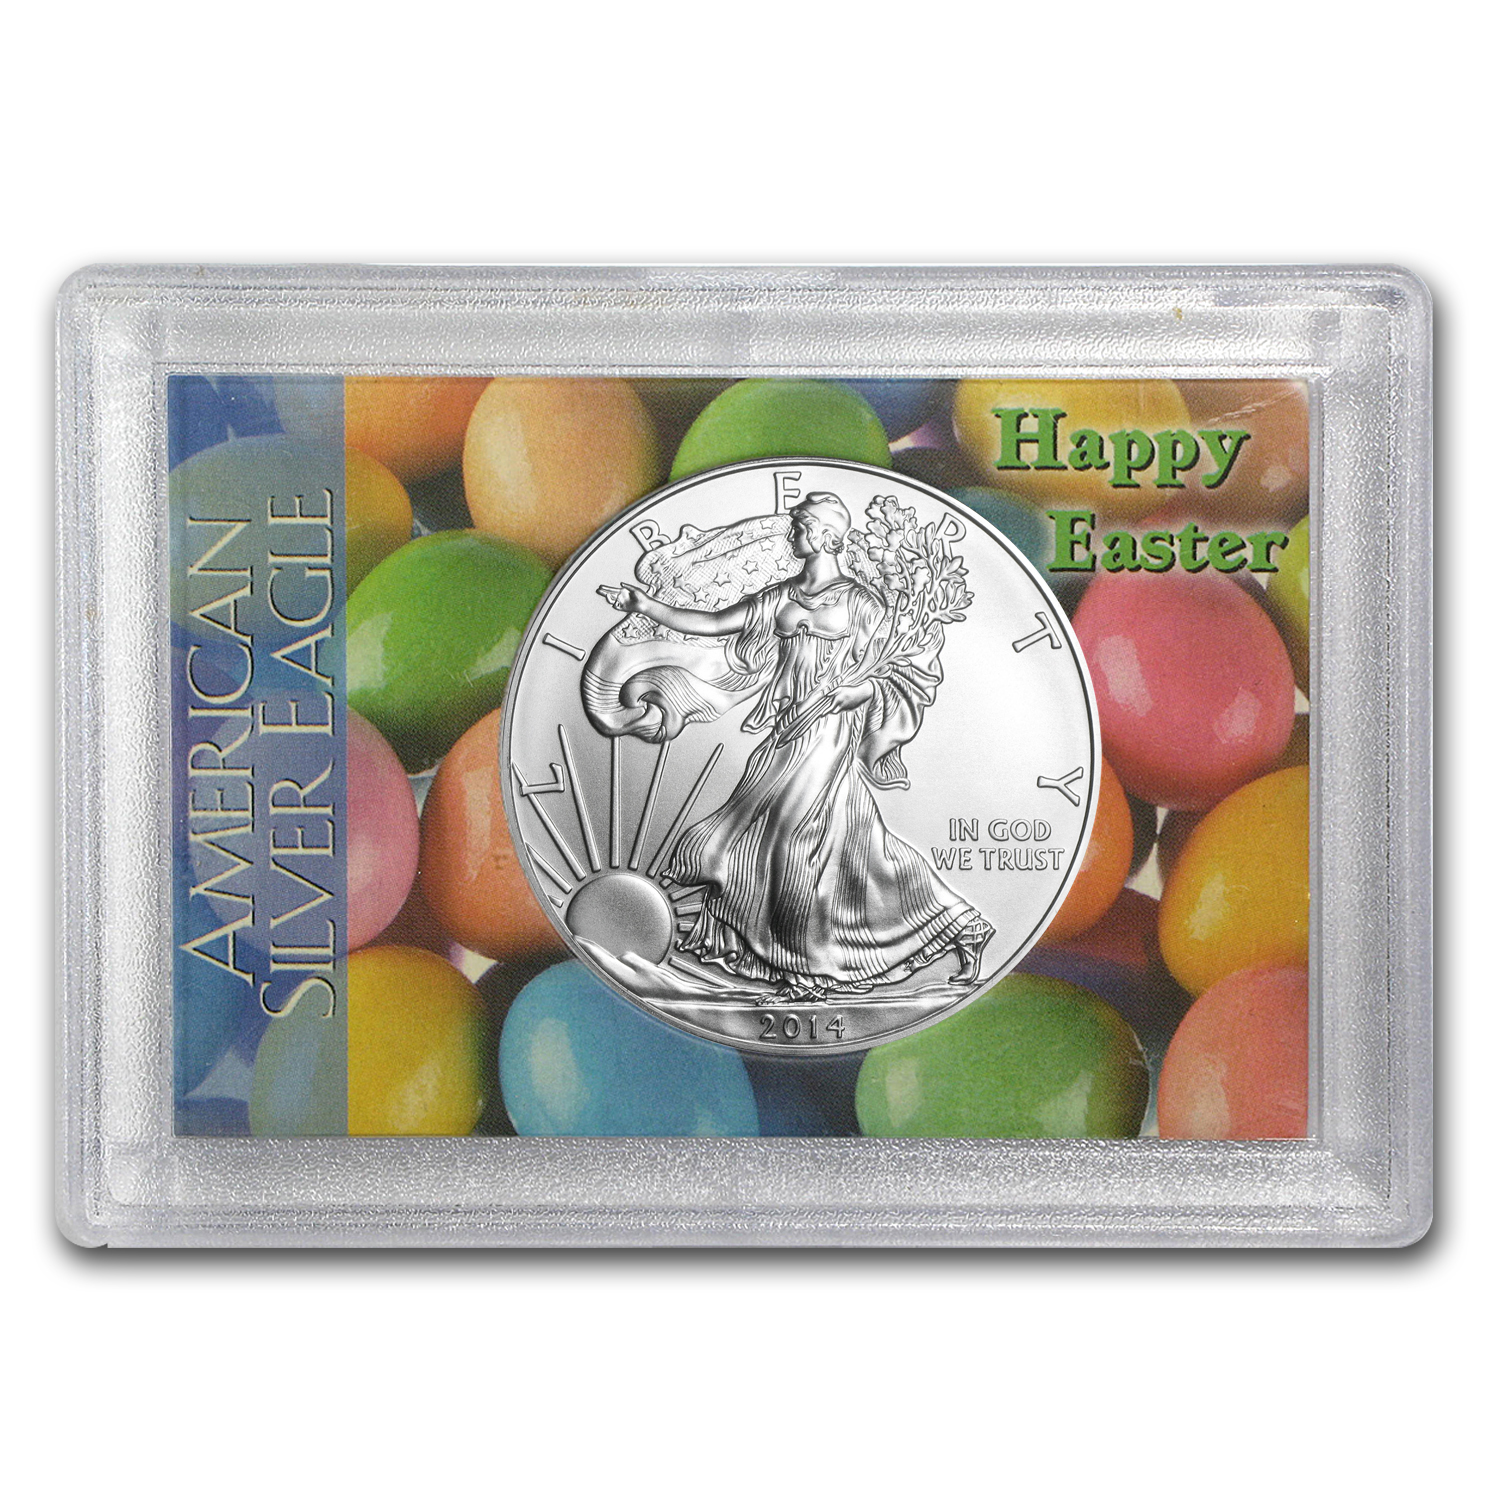 2014 1 oz Silver Eagle in Happy Easter Design Harris Holder